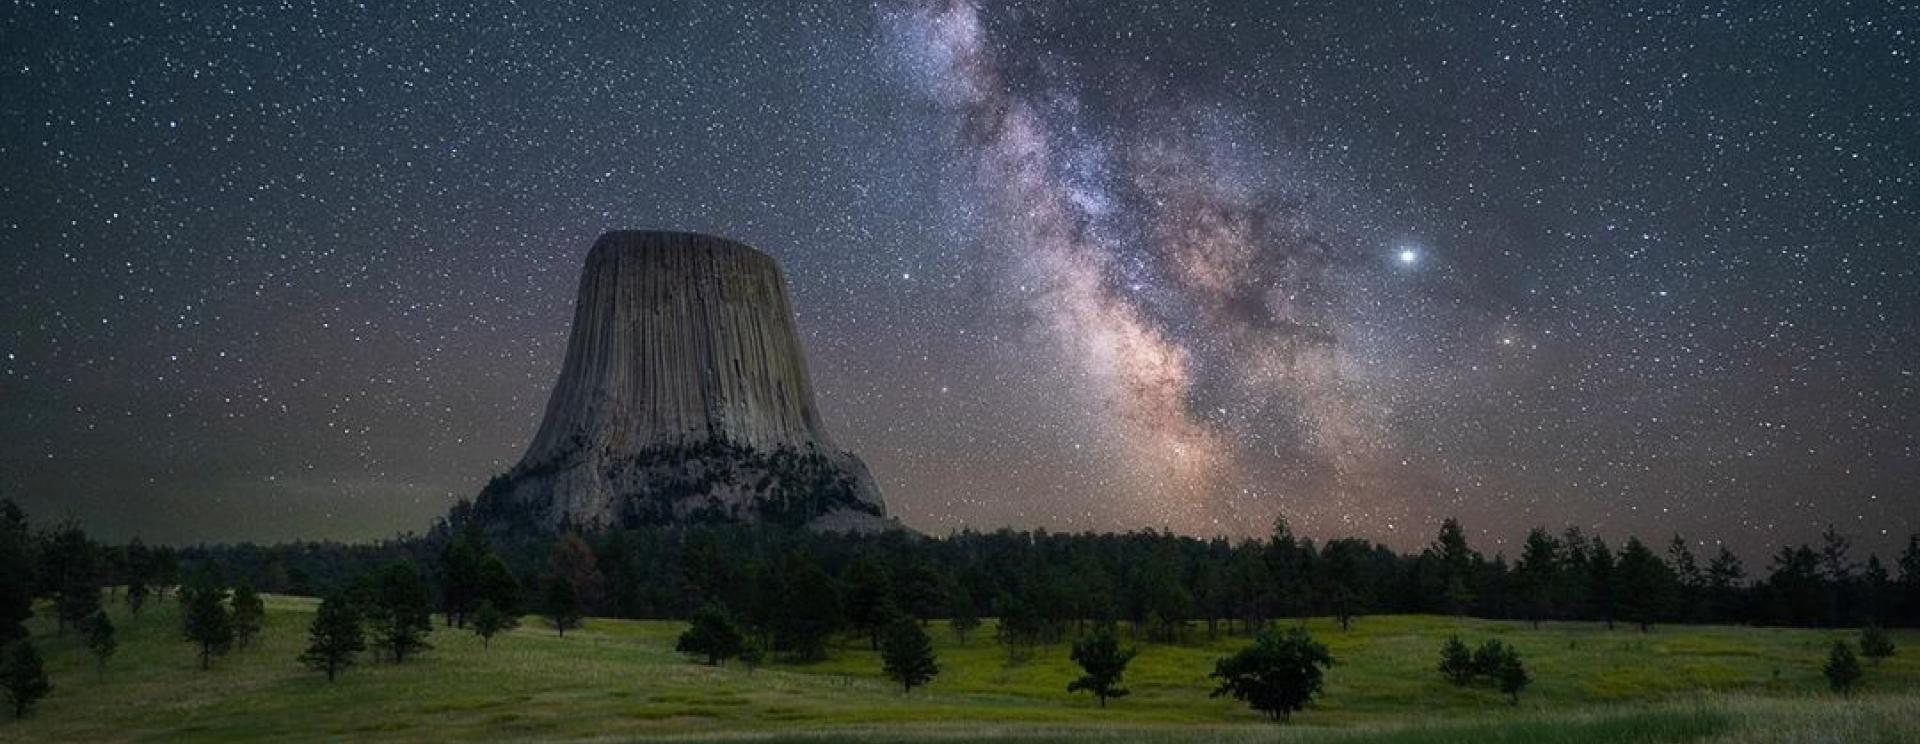 The 5 Most Remarkable Photos of the Black Hills and Badlands in March 2020